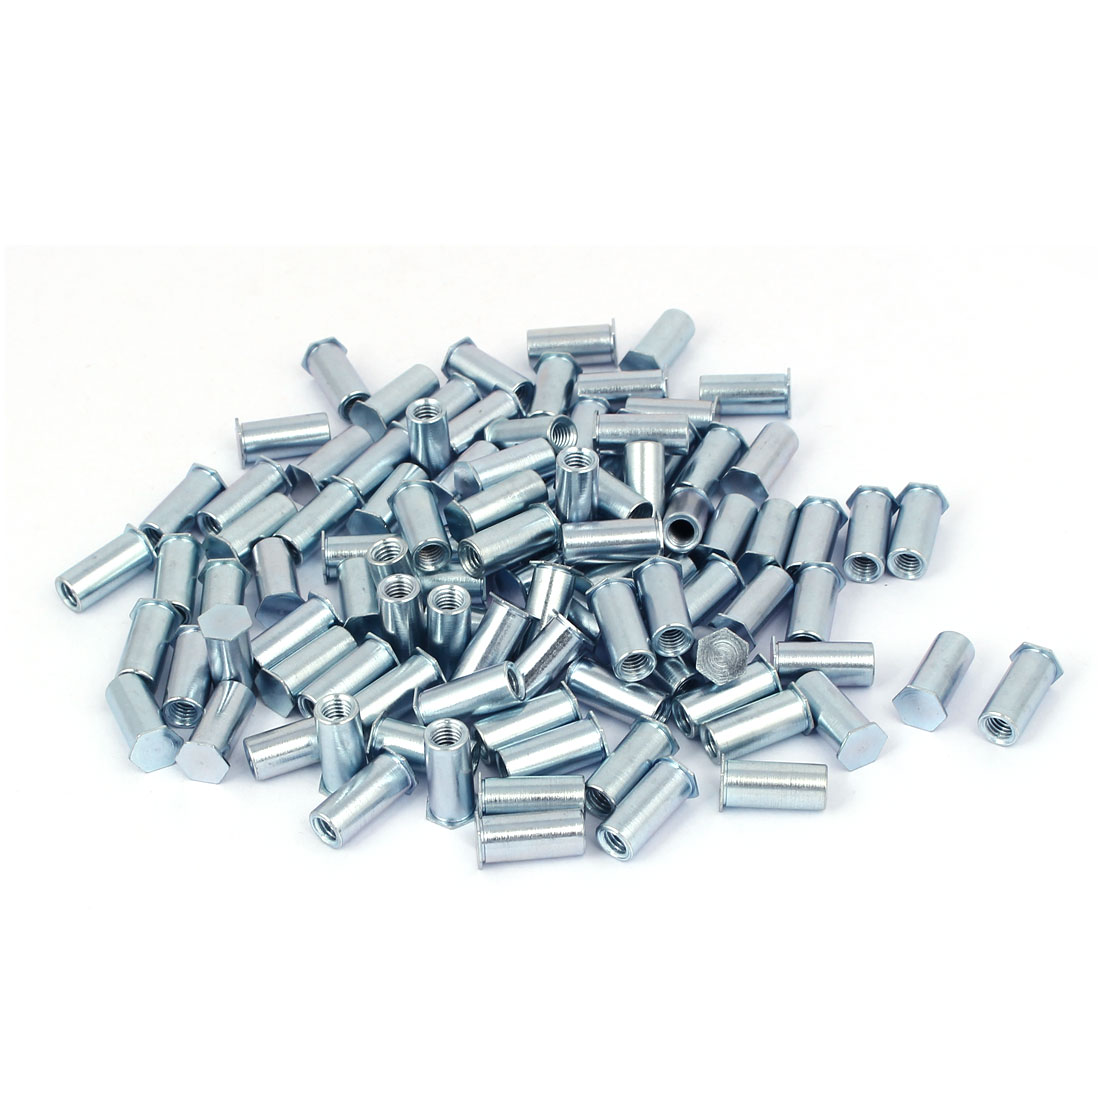 M5 x 16mm Thread Hex Head Blind Self Clinching Standoffs Silver Tone 100 Pcs